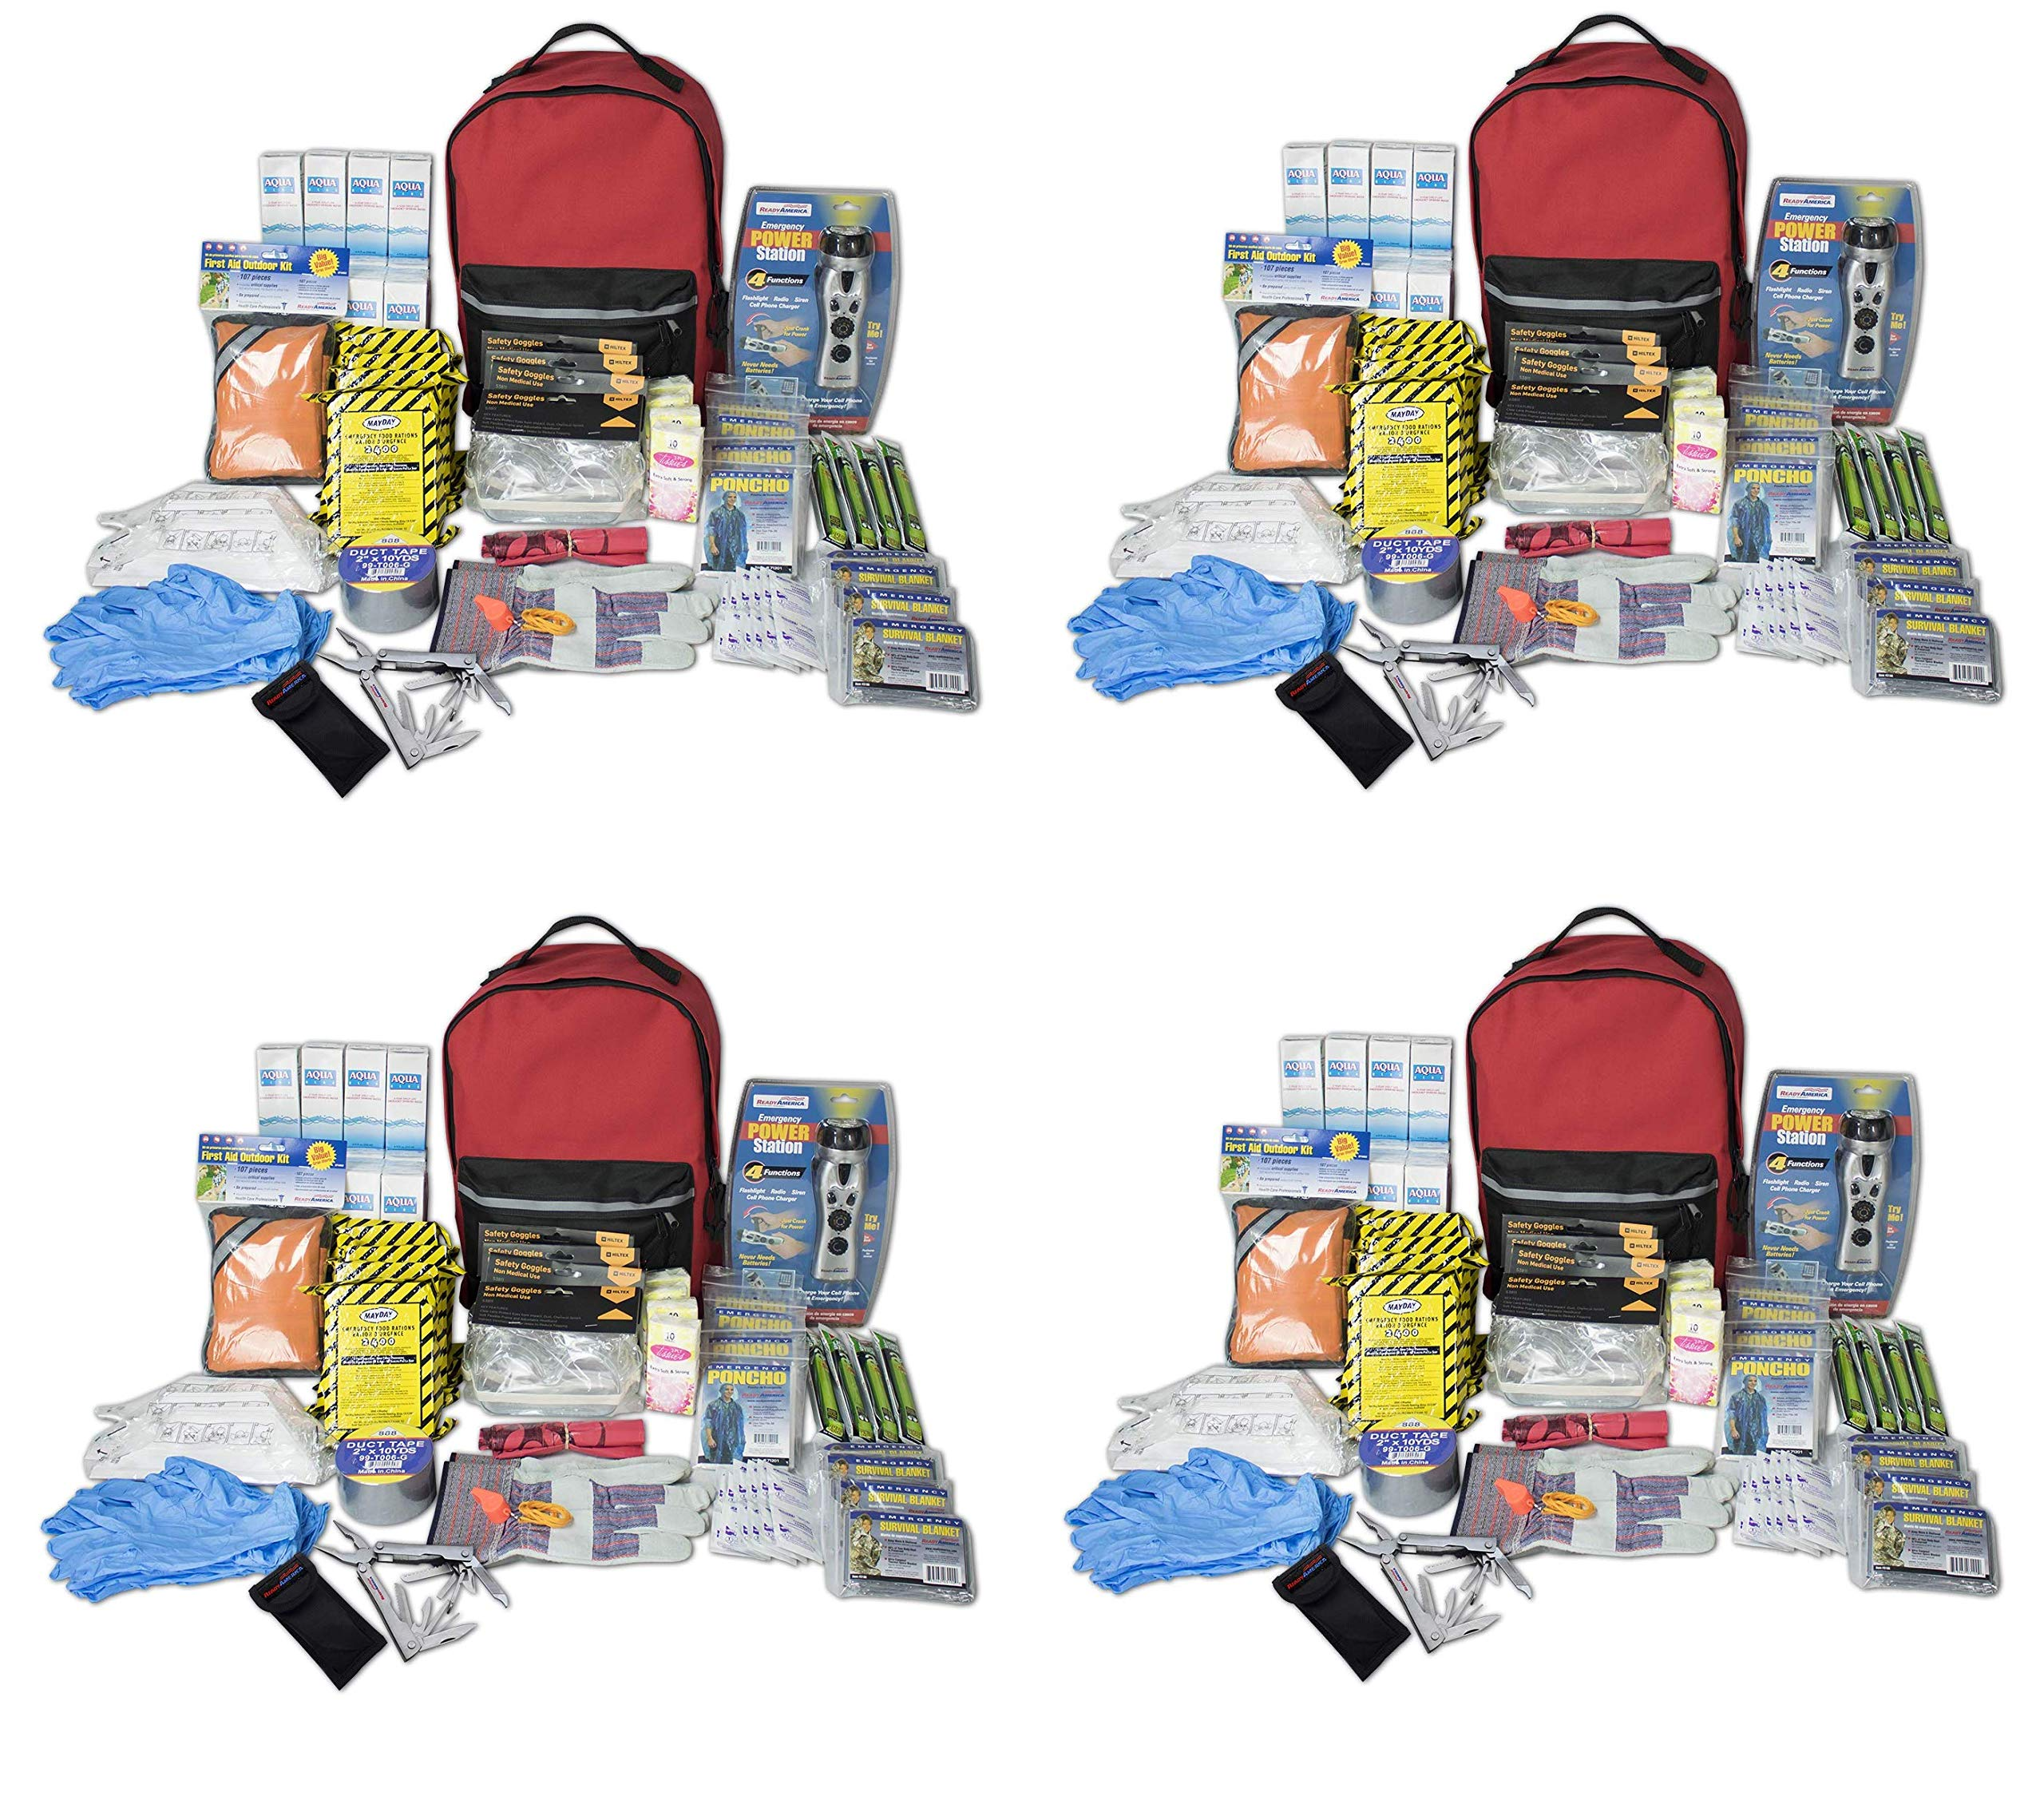 Ready America 70385 Deluxe Emergency Kit 4 Person Backpack (Fоur Расk)